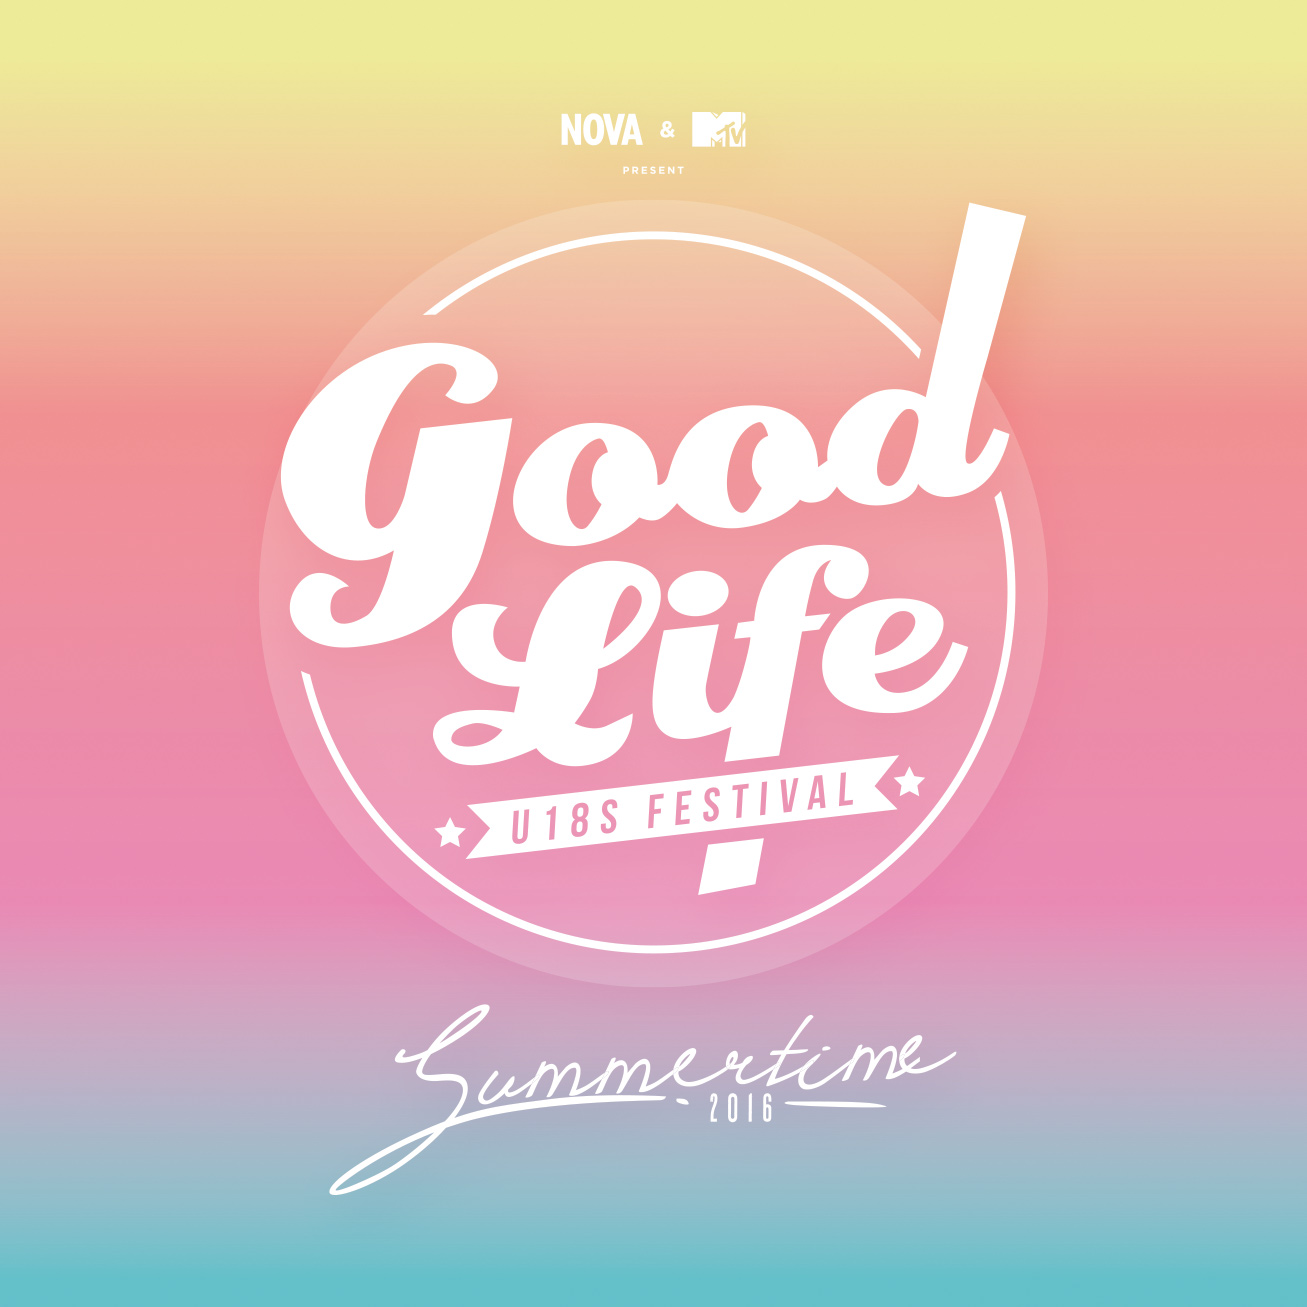 Sydney Party Bus can party with you to the Goodlife Festival on Friday the 26th of February